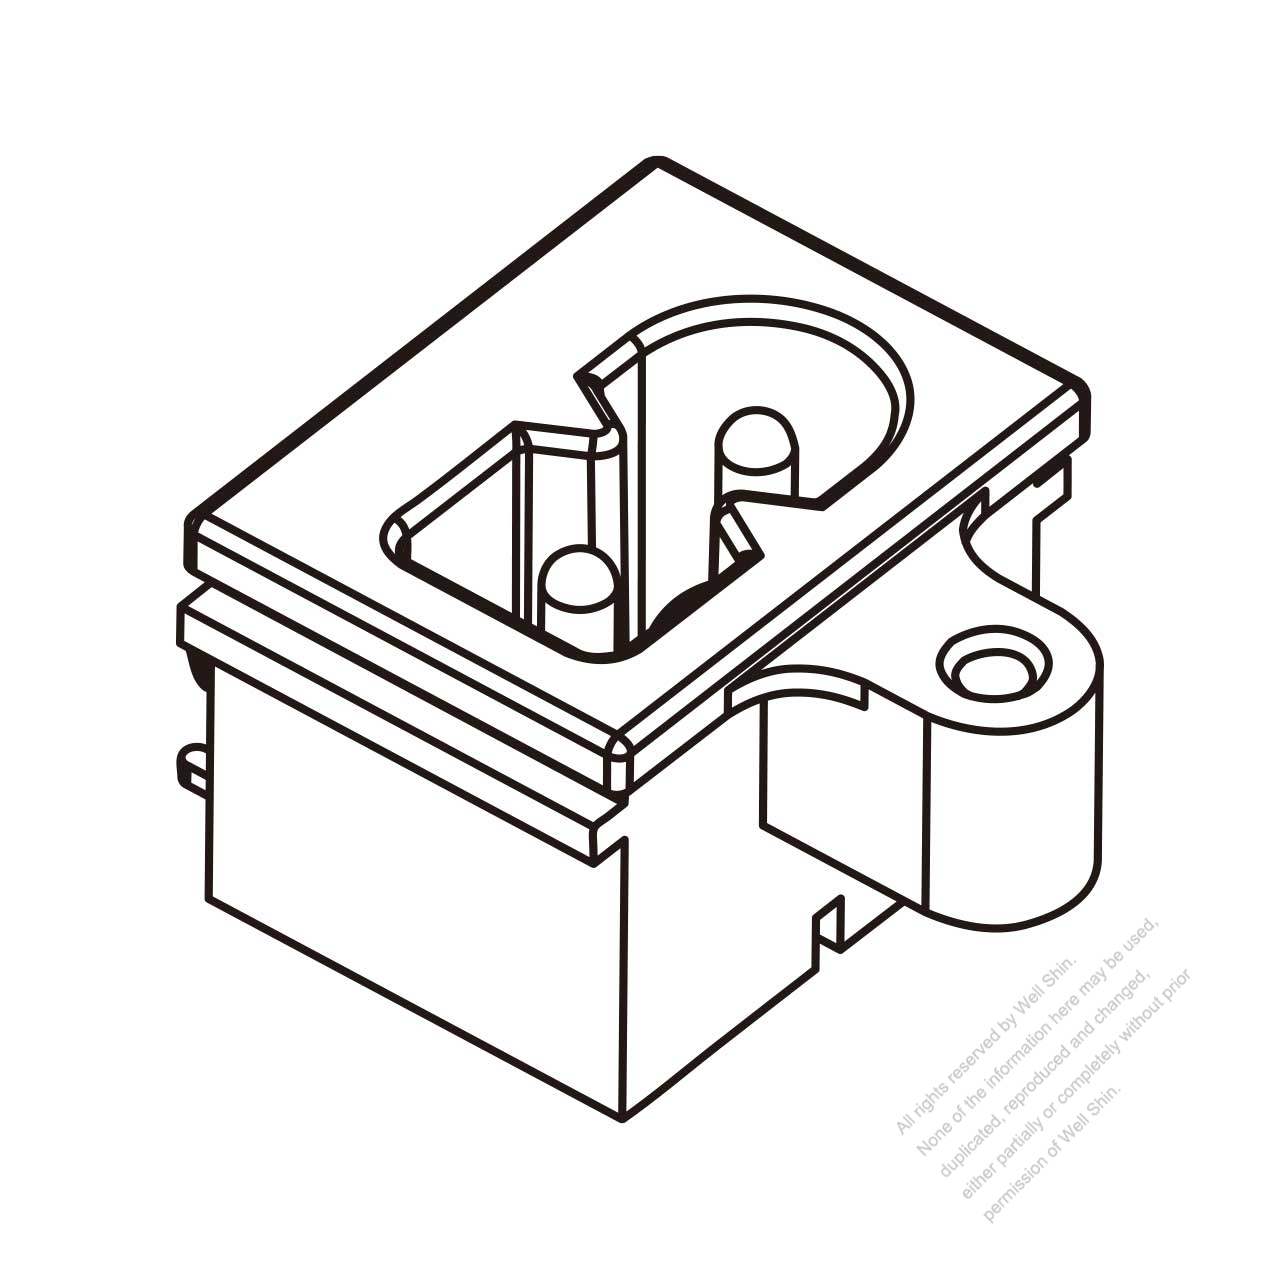 IEC 60320-1 (C8) Appliance Inlet (Polarity), Screw Type, 2